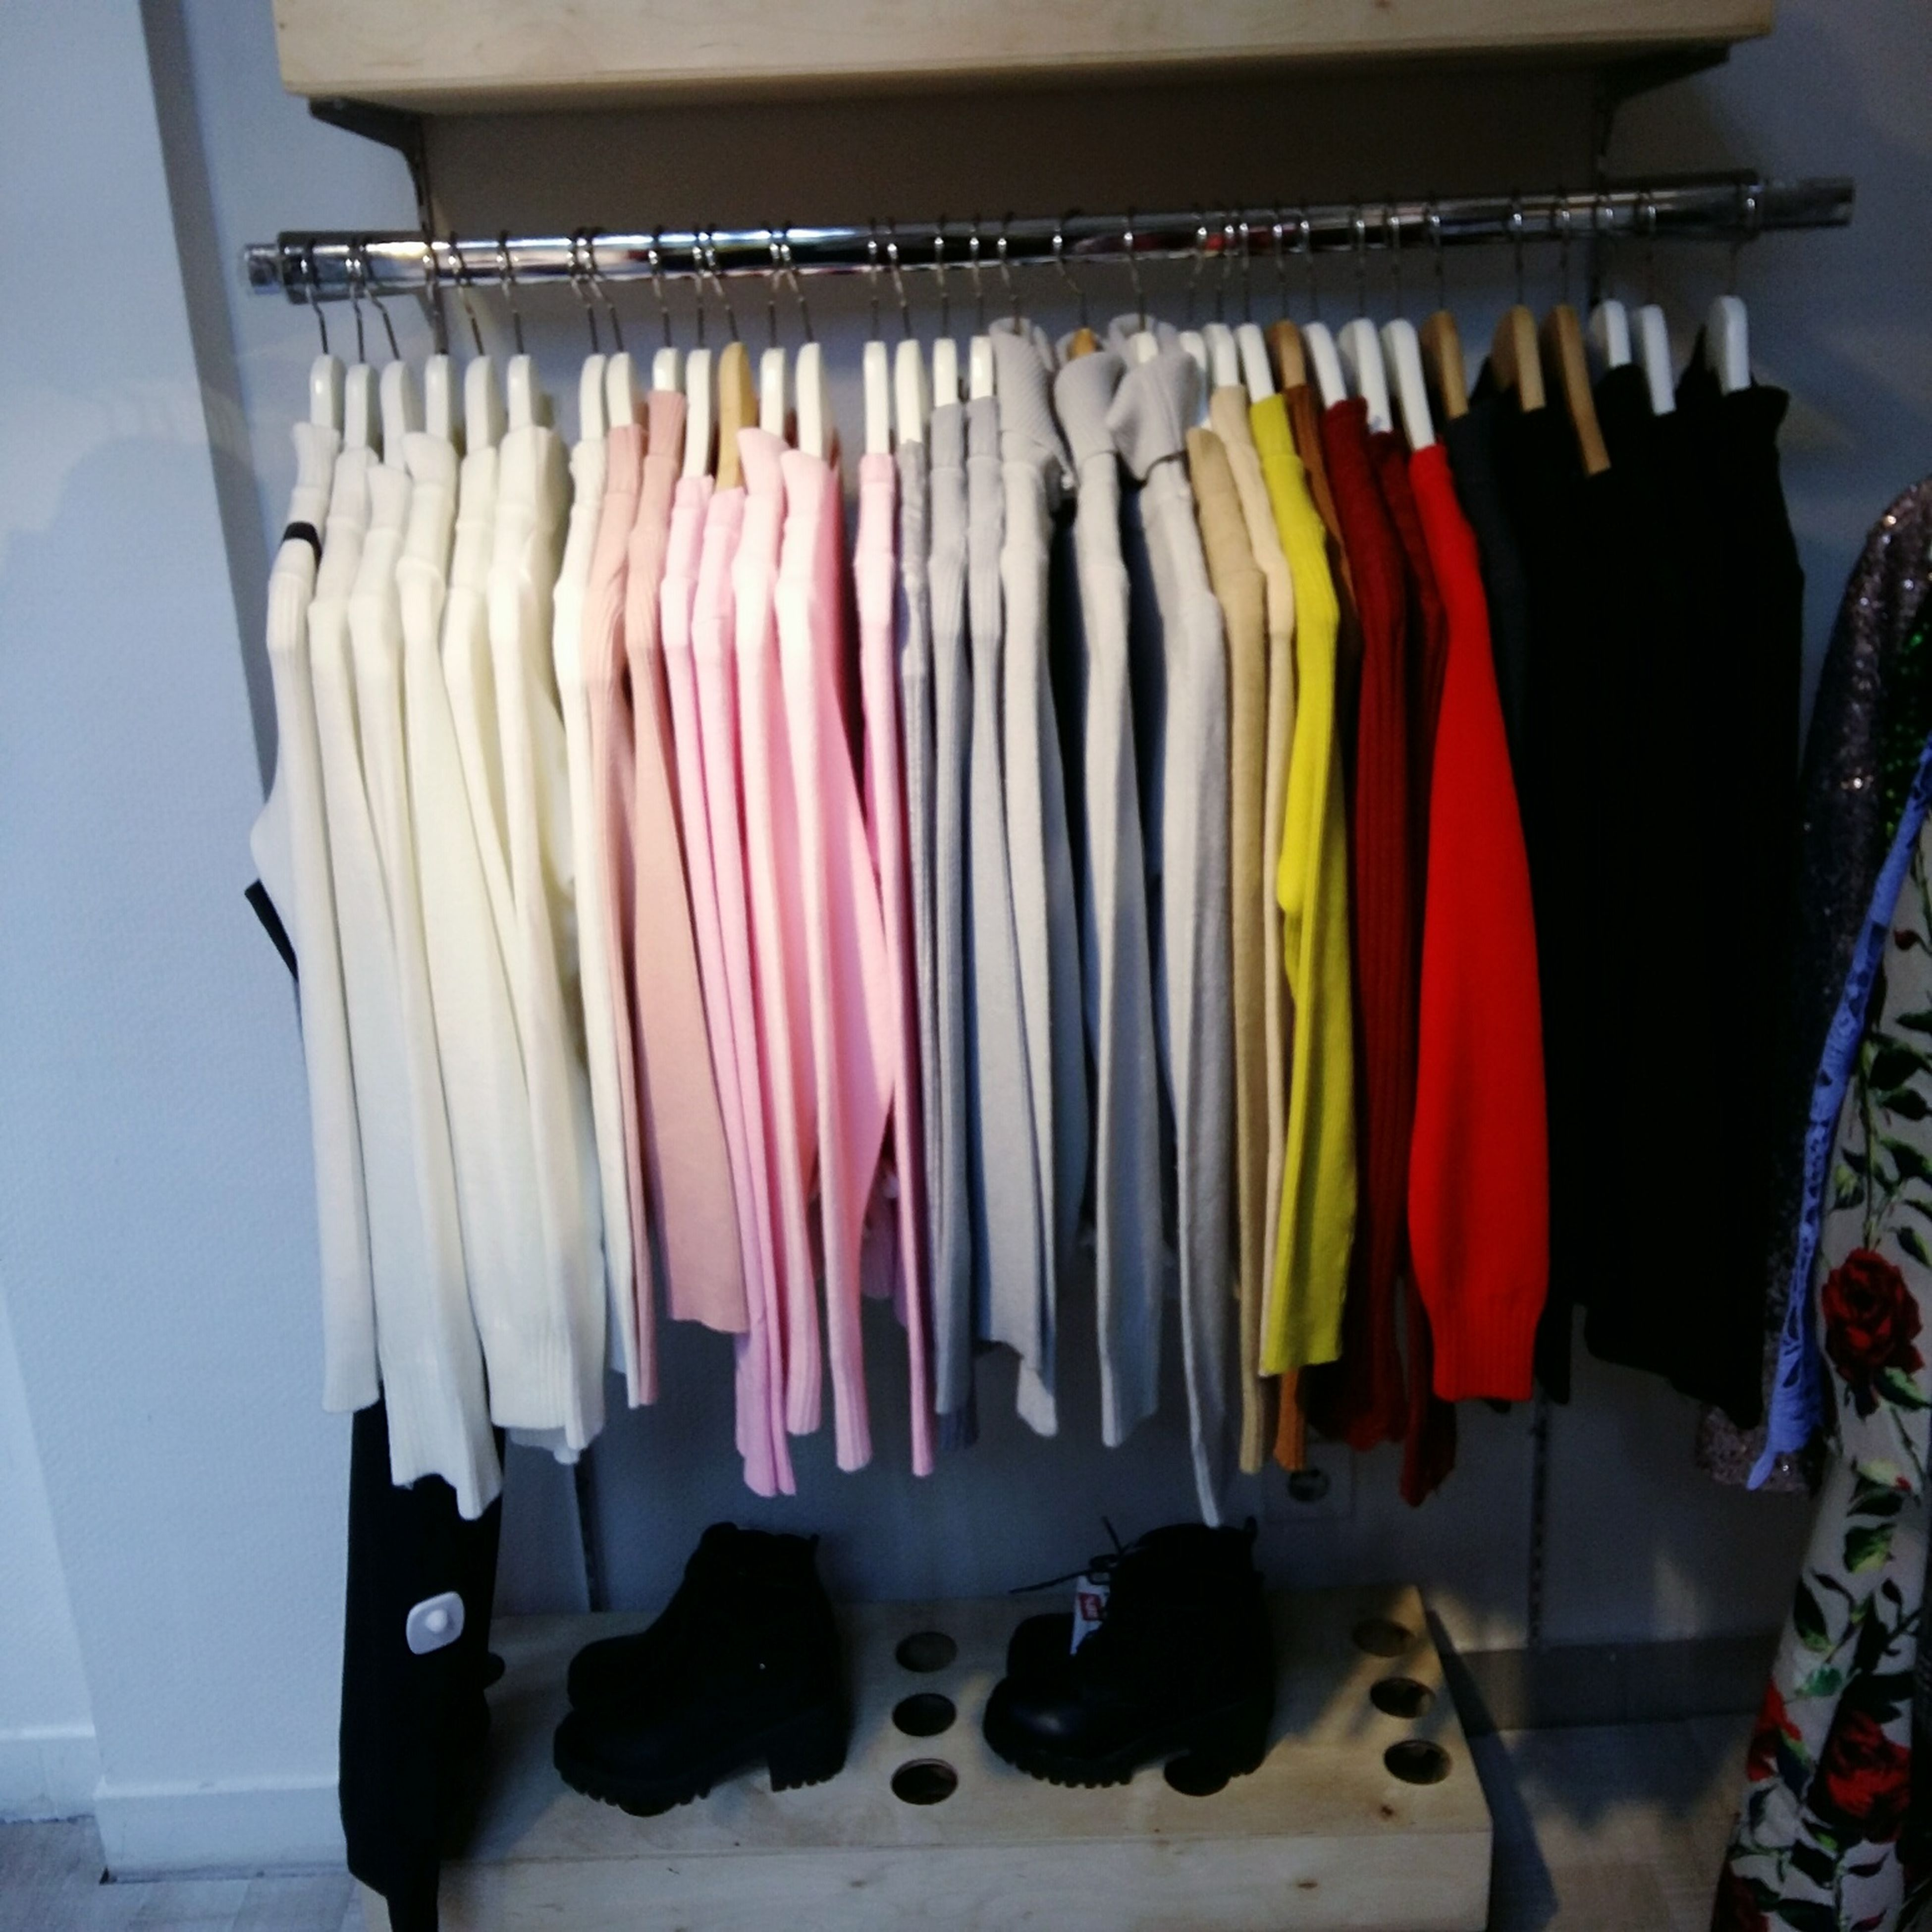 hanging, variation, multi colored, coathanger, clothes rack, choice, clothing, indoors, no people, large group of objects, in a row, neat, arrangement, day